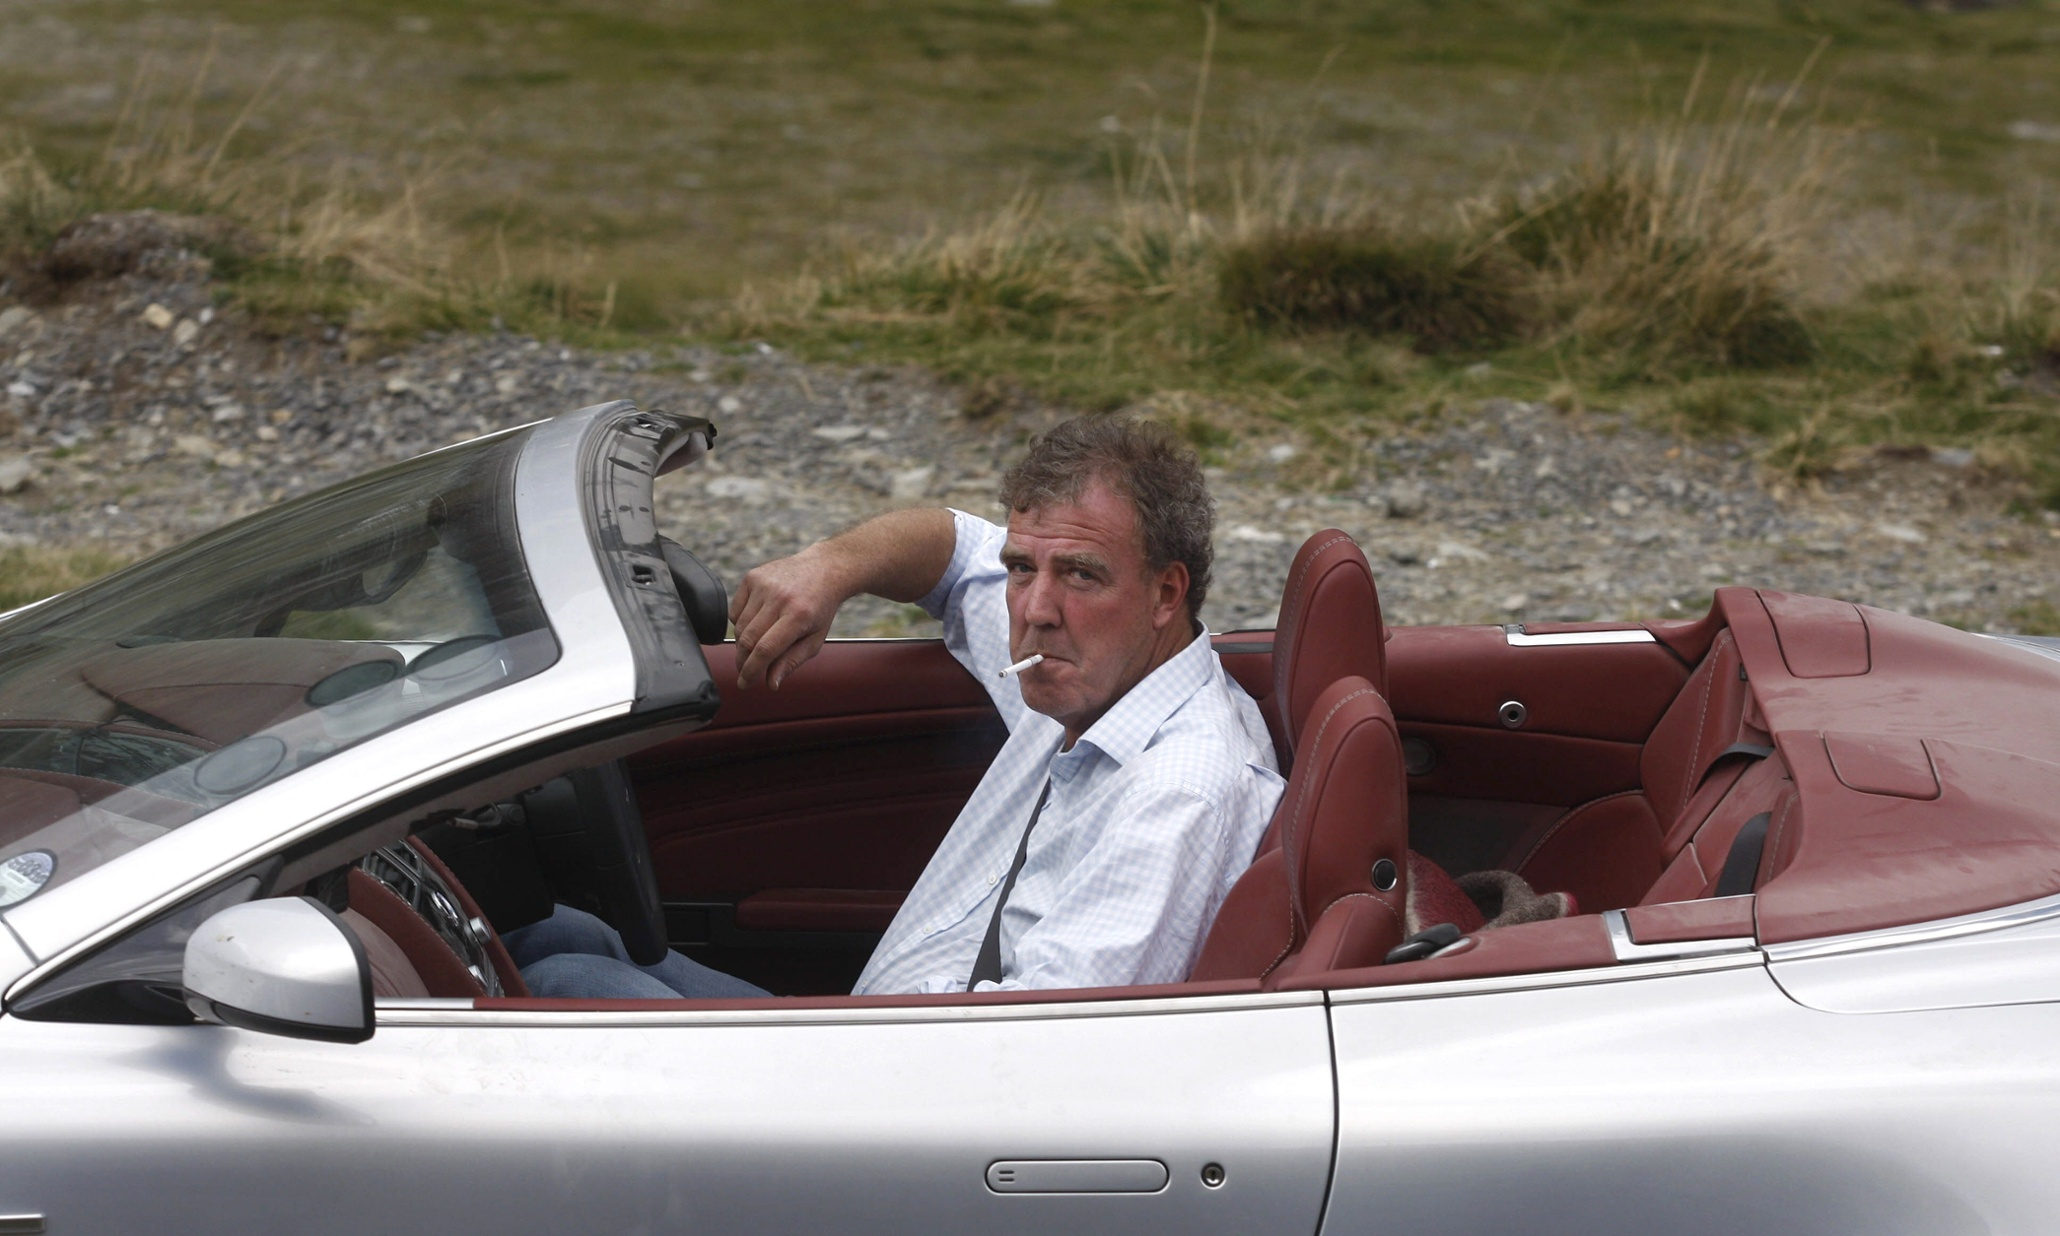 Clarkson should do the decent thing and resign